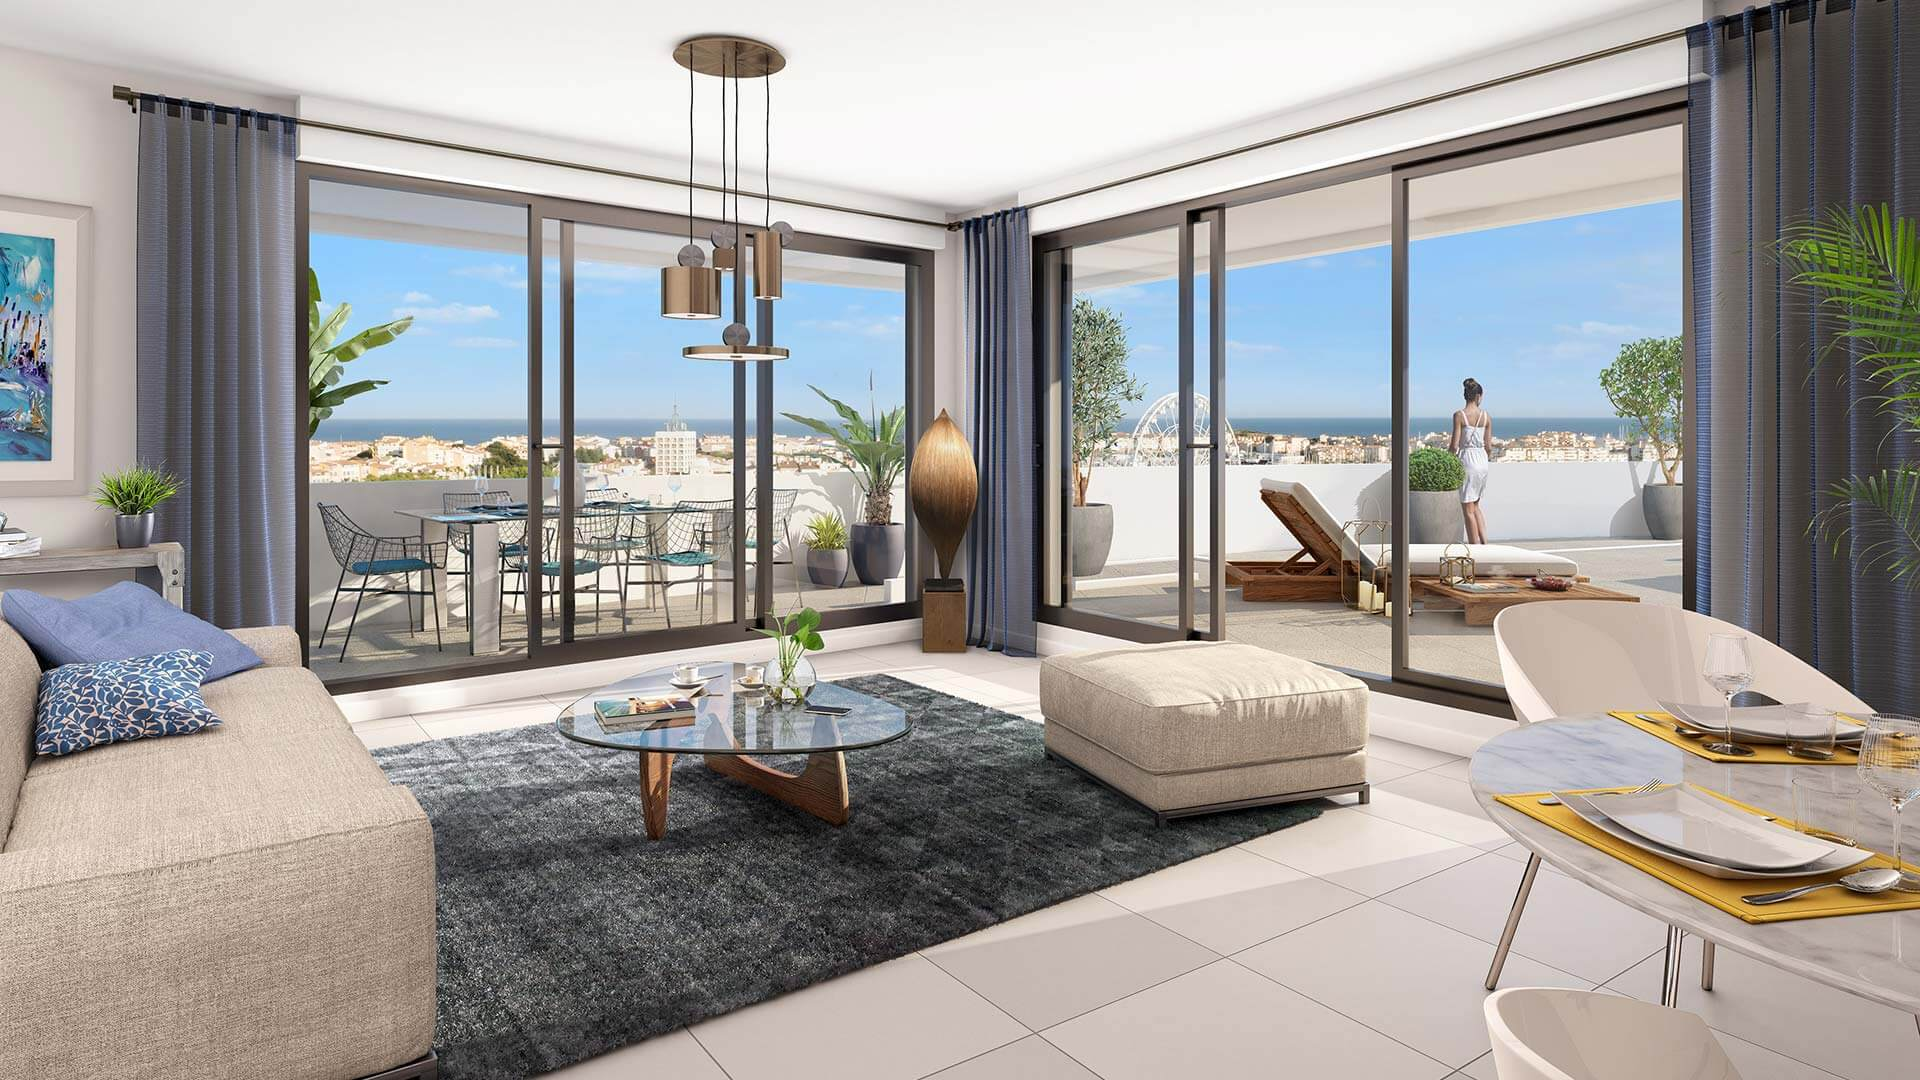 Programme immobilier neuf Iconic 2